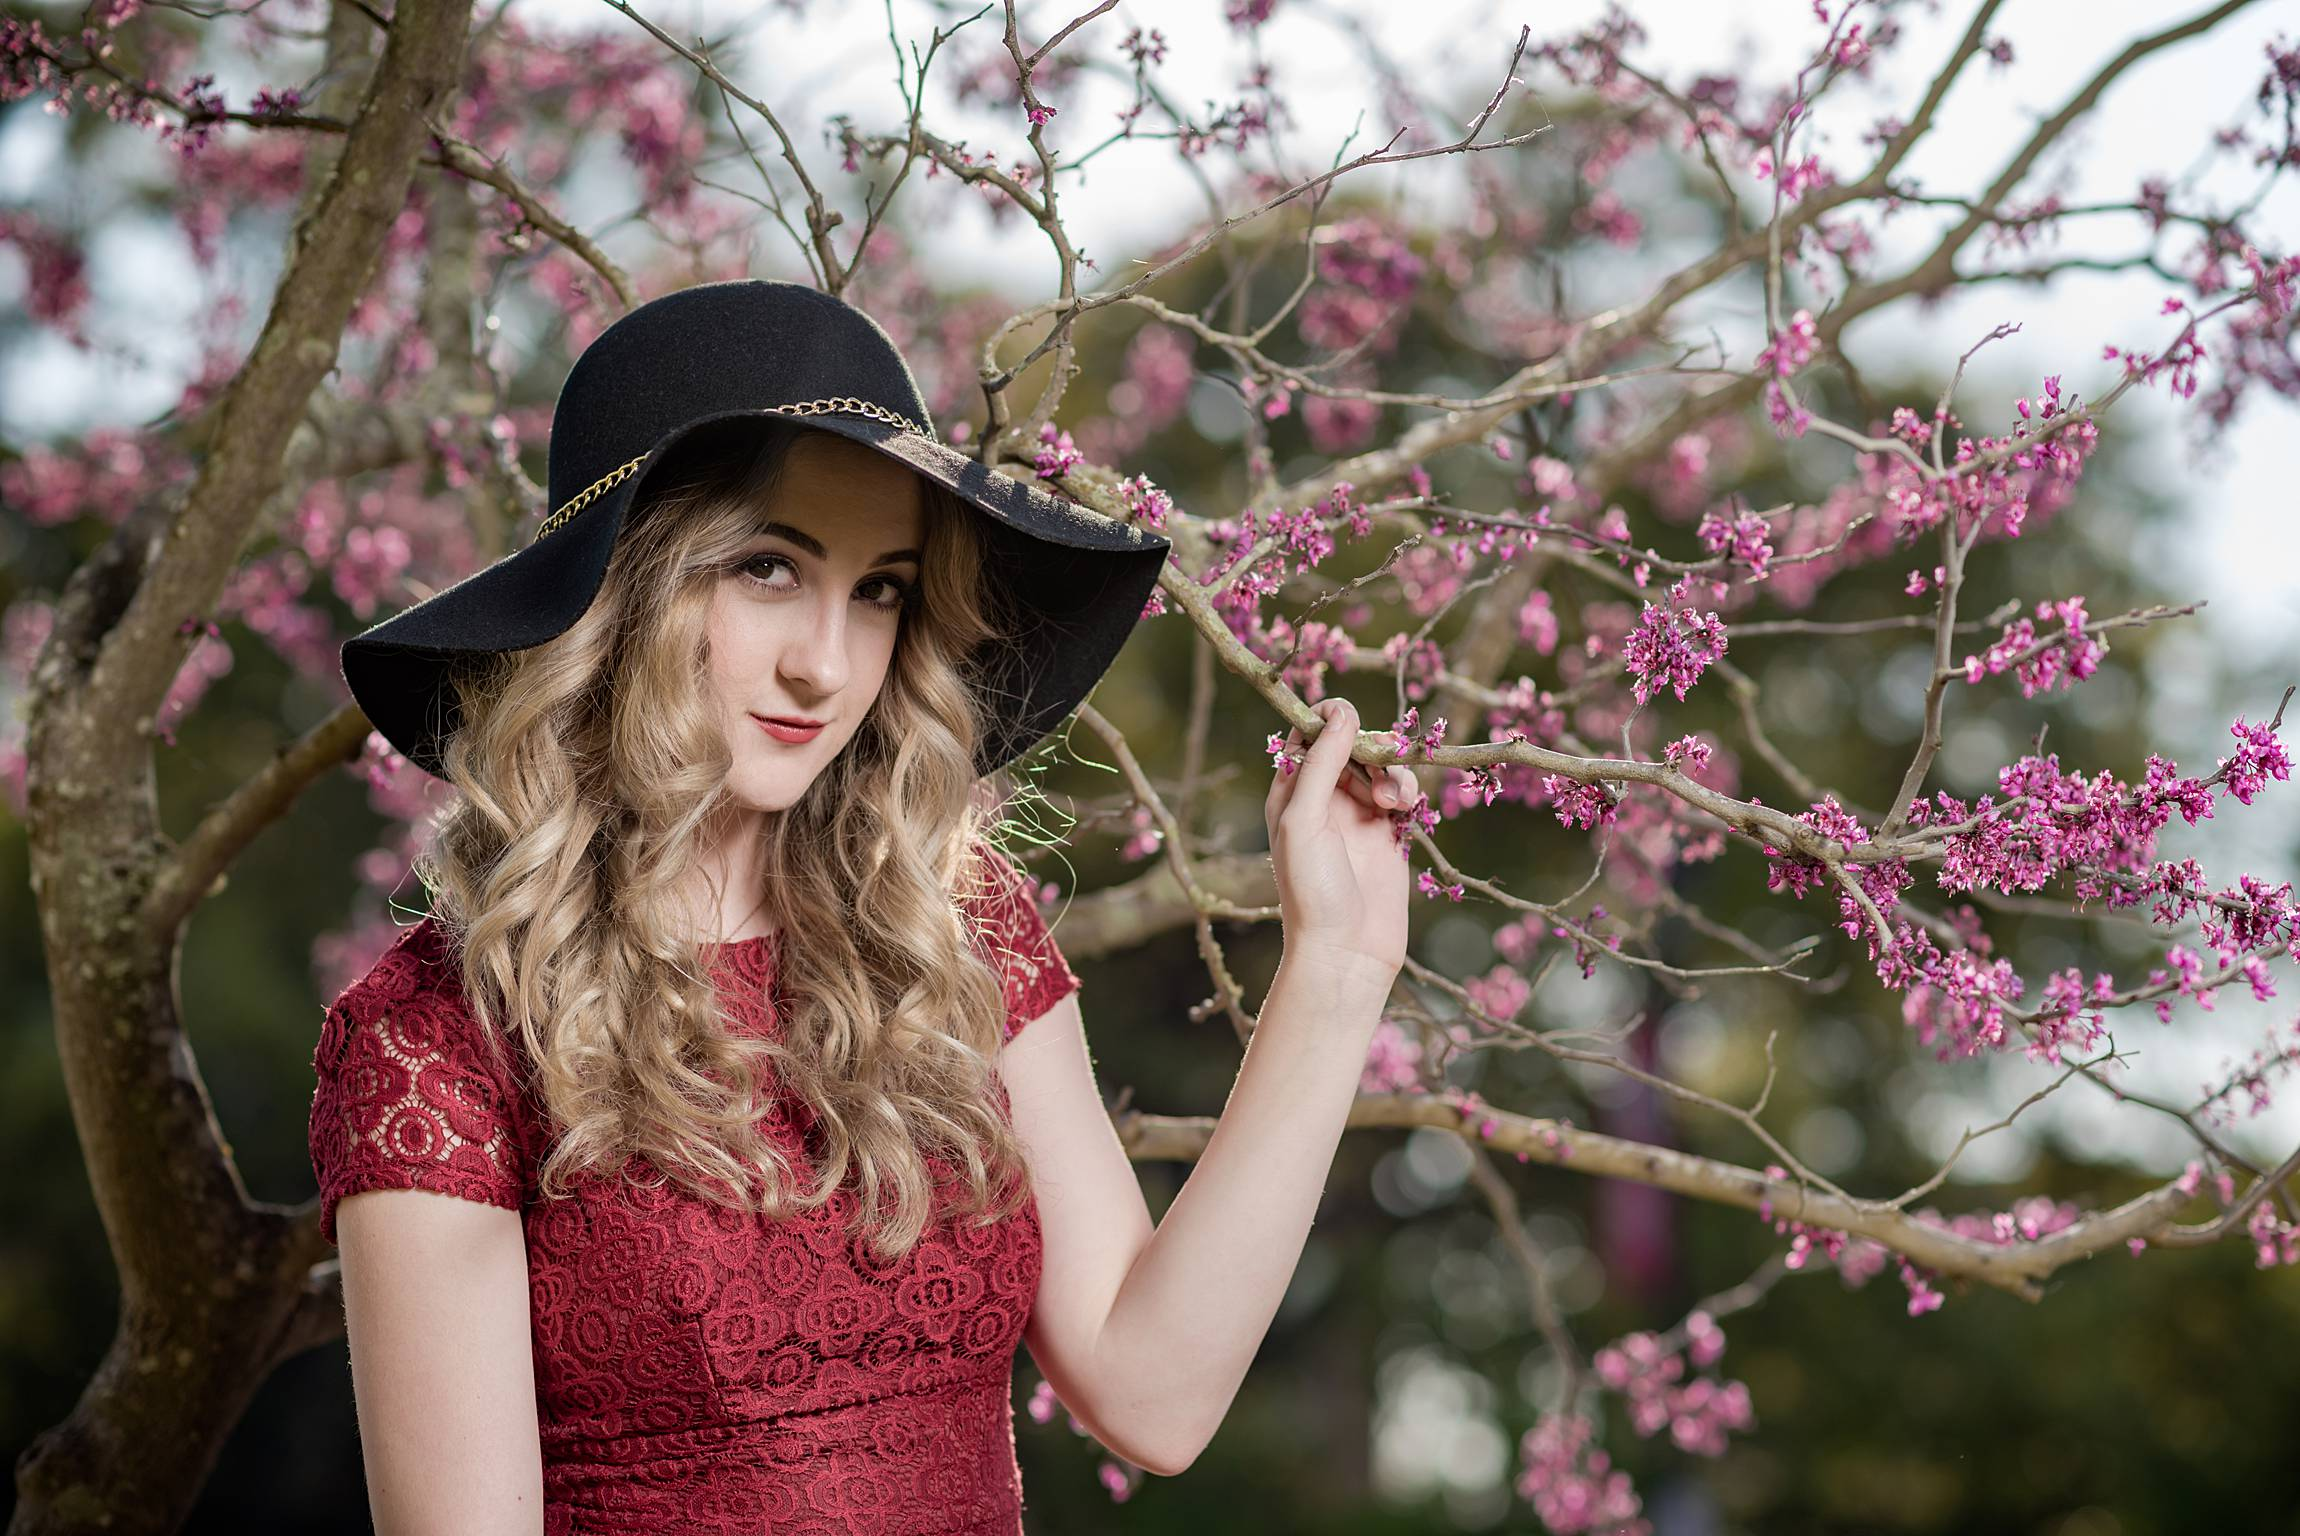 Senior portrait of a girl standing by a tree with purple blooms